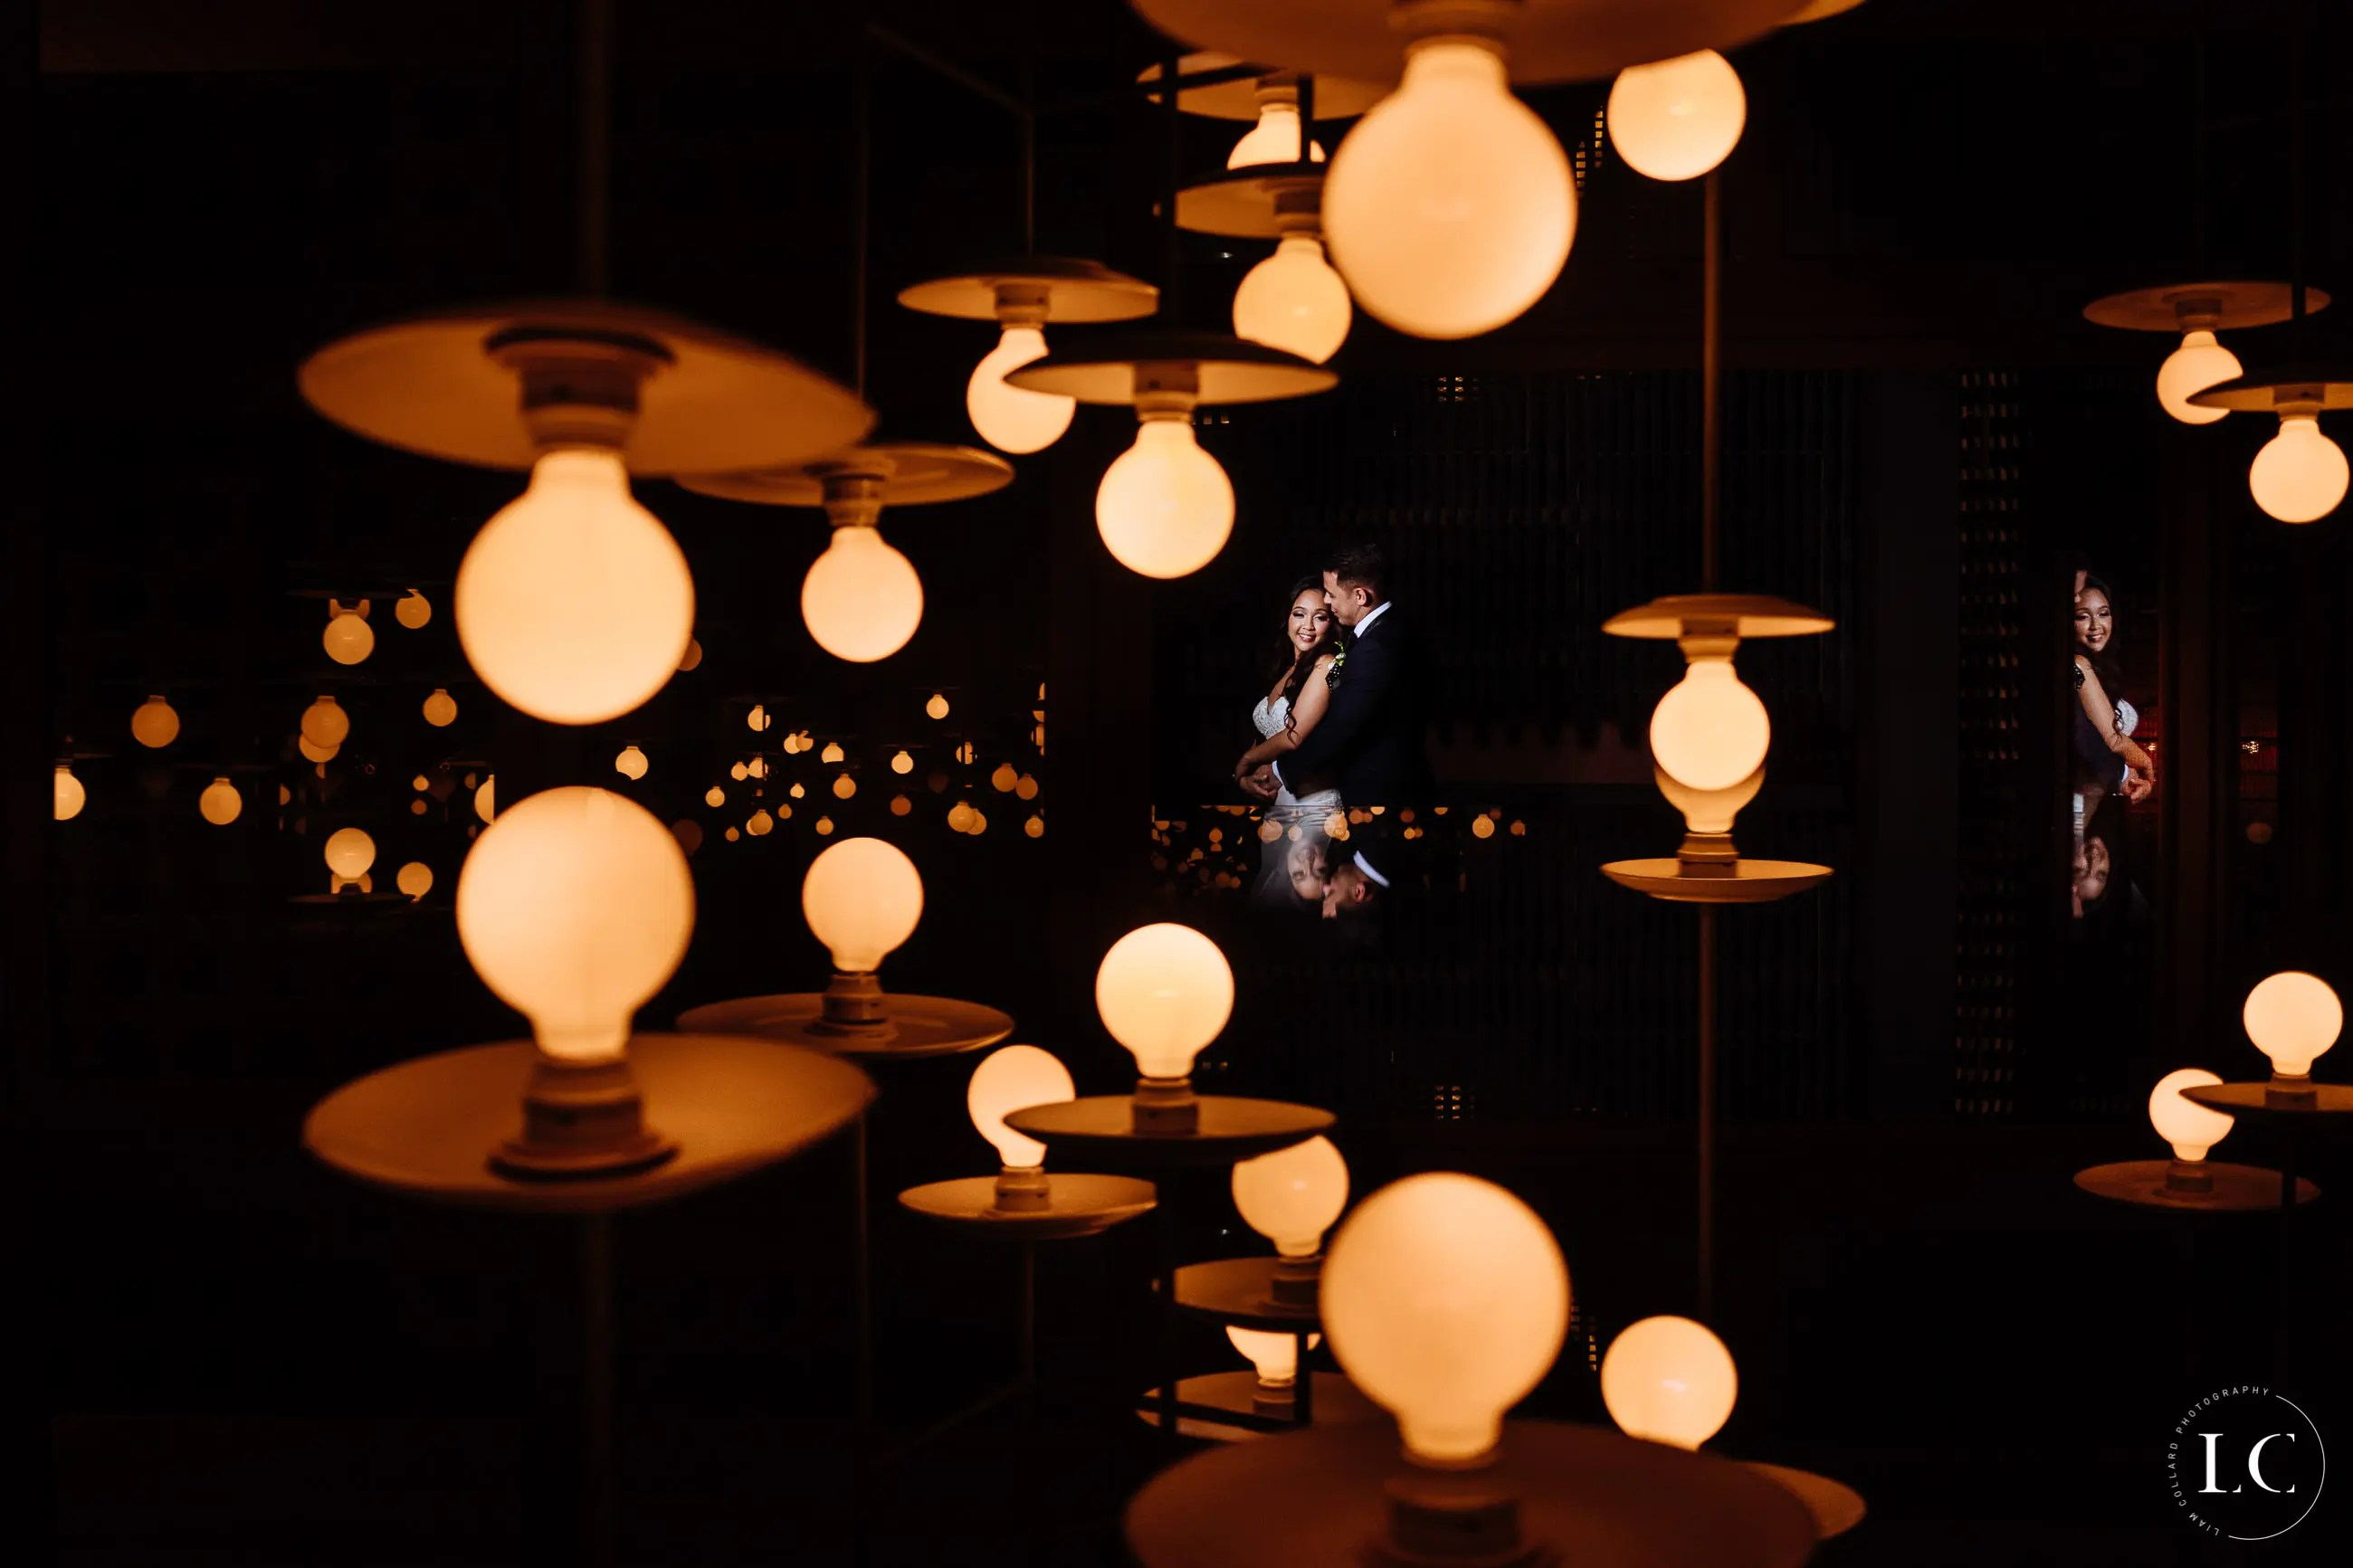 Various lightbulbs lit up with view of bride and groom